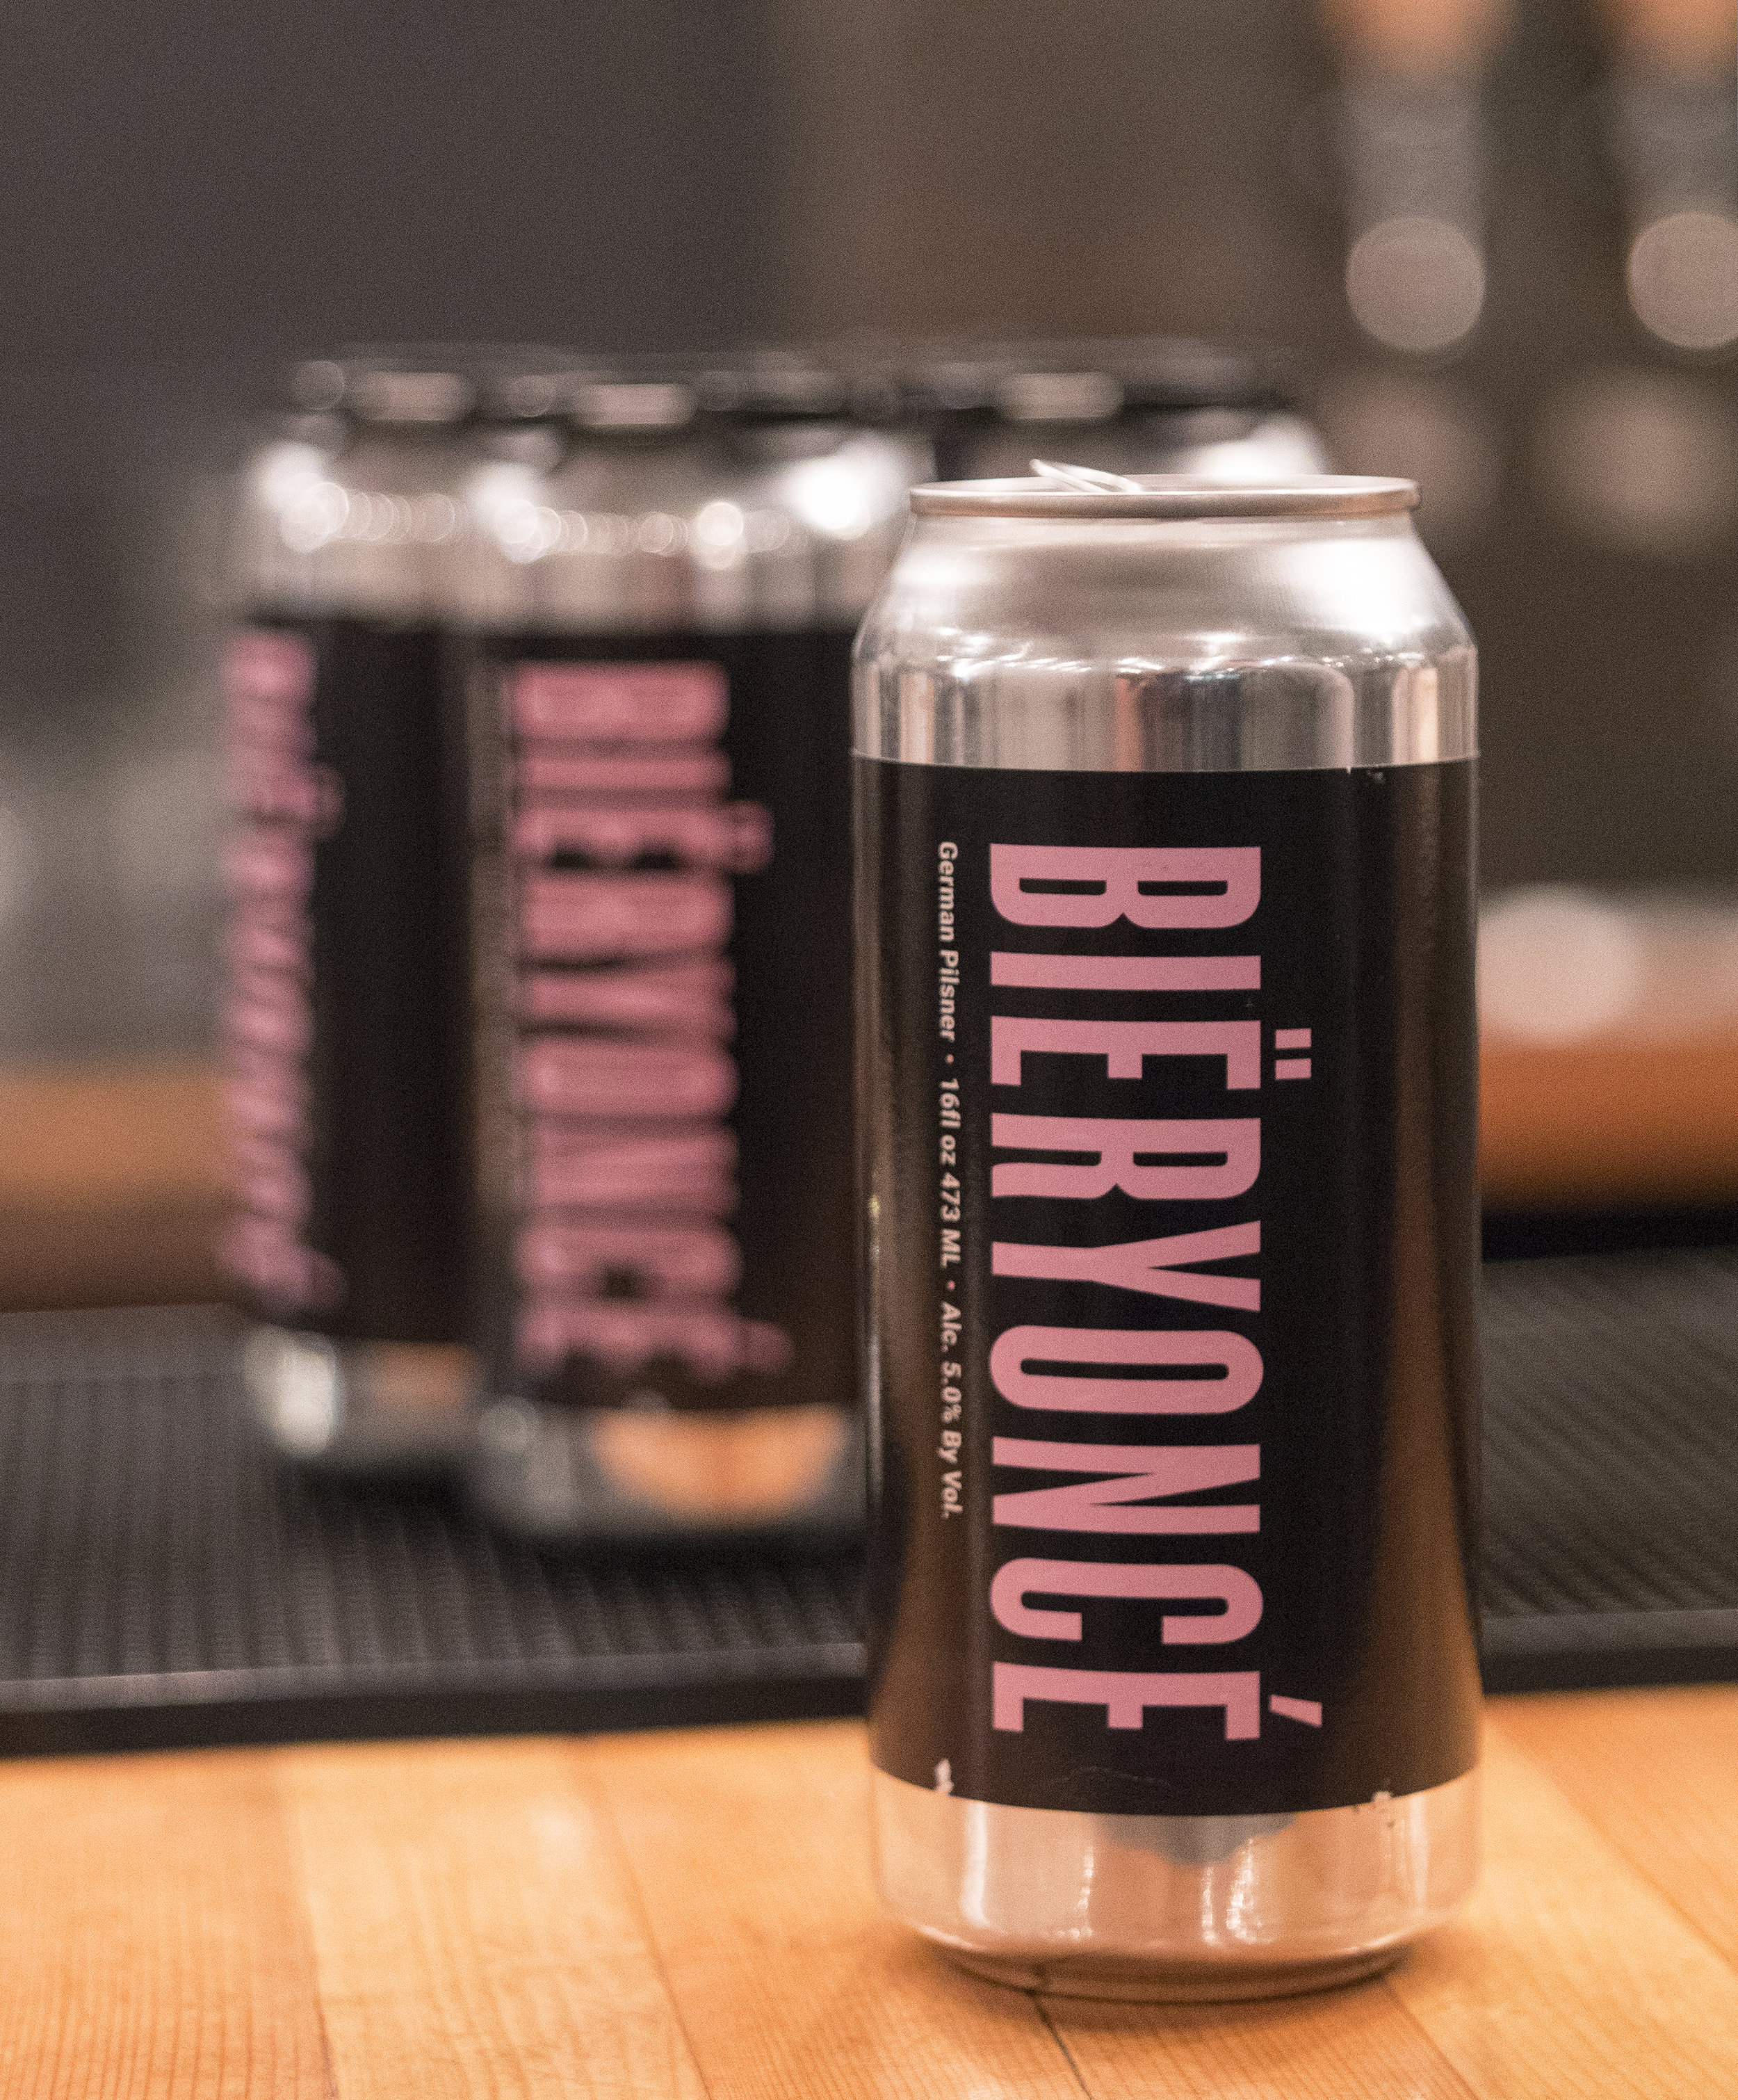 $16 - 4-Pack of Bieryonce Cans